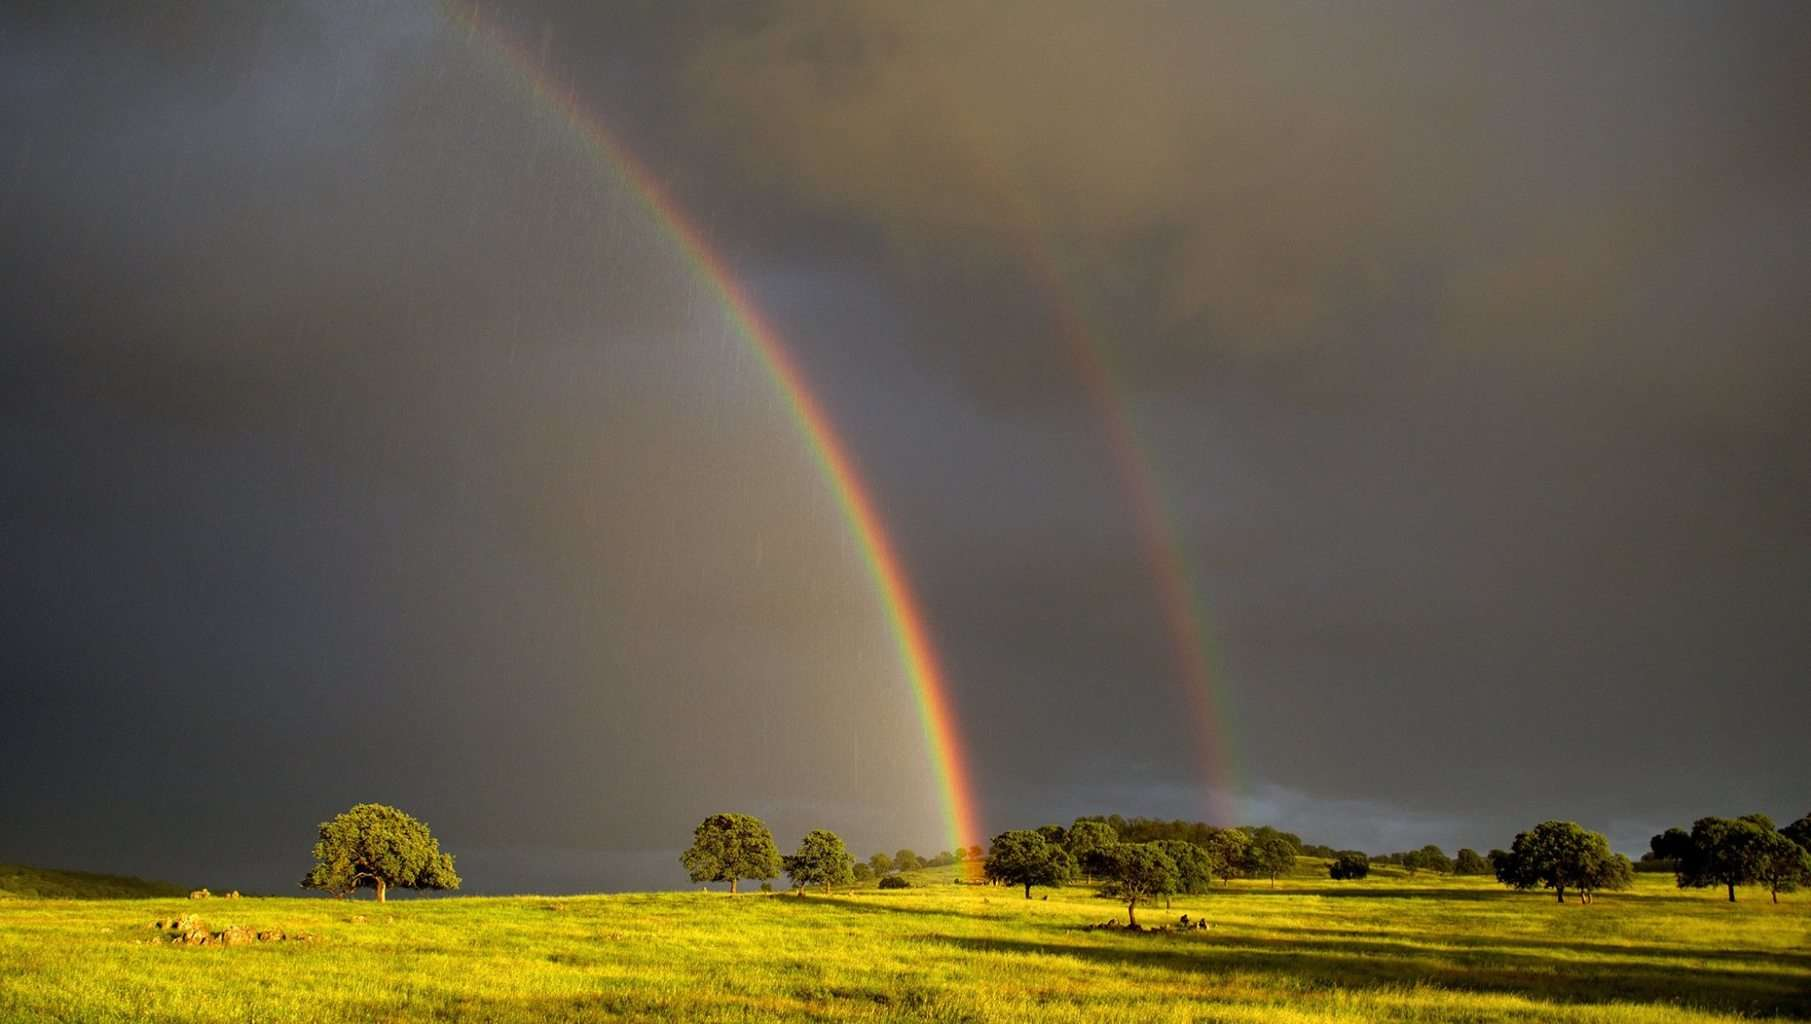 Double Rainbow.. Nikon 5200 f/4.5 1/80 sec. ISO 400 at 18mm with 18-55mm lens.